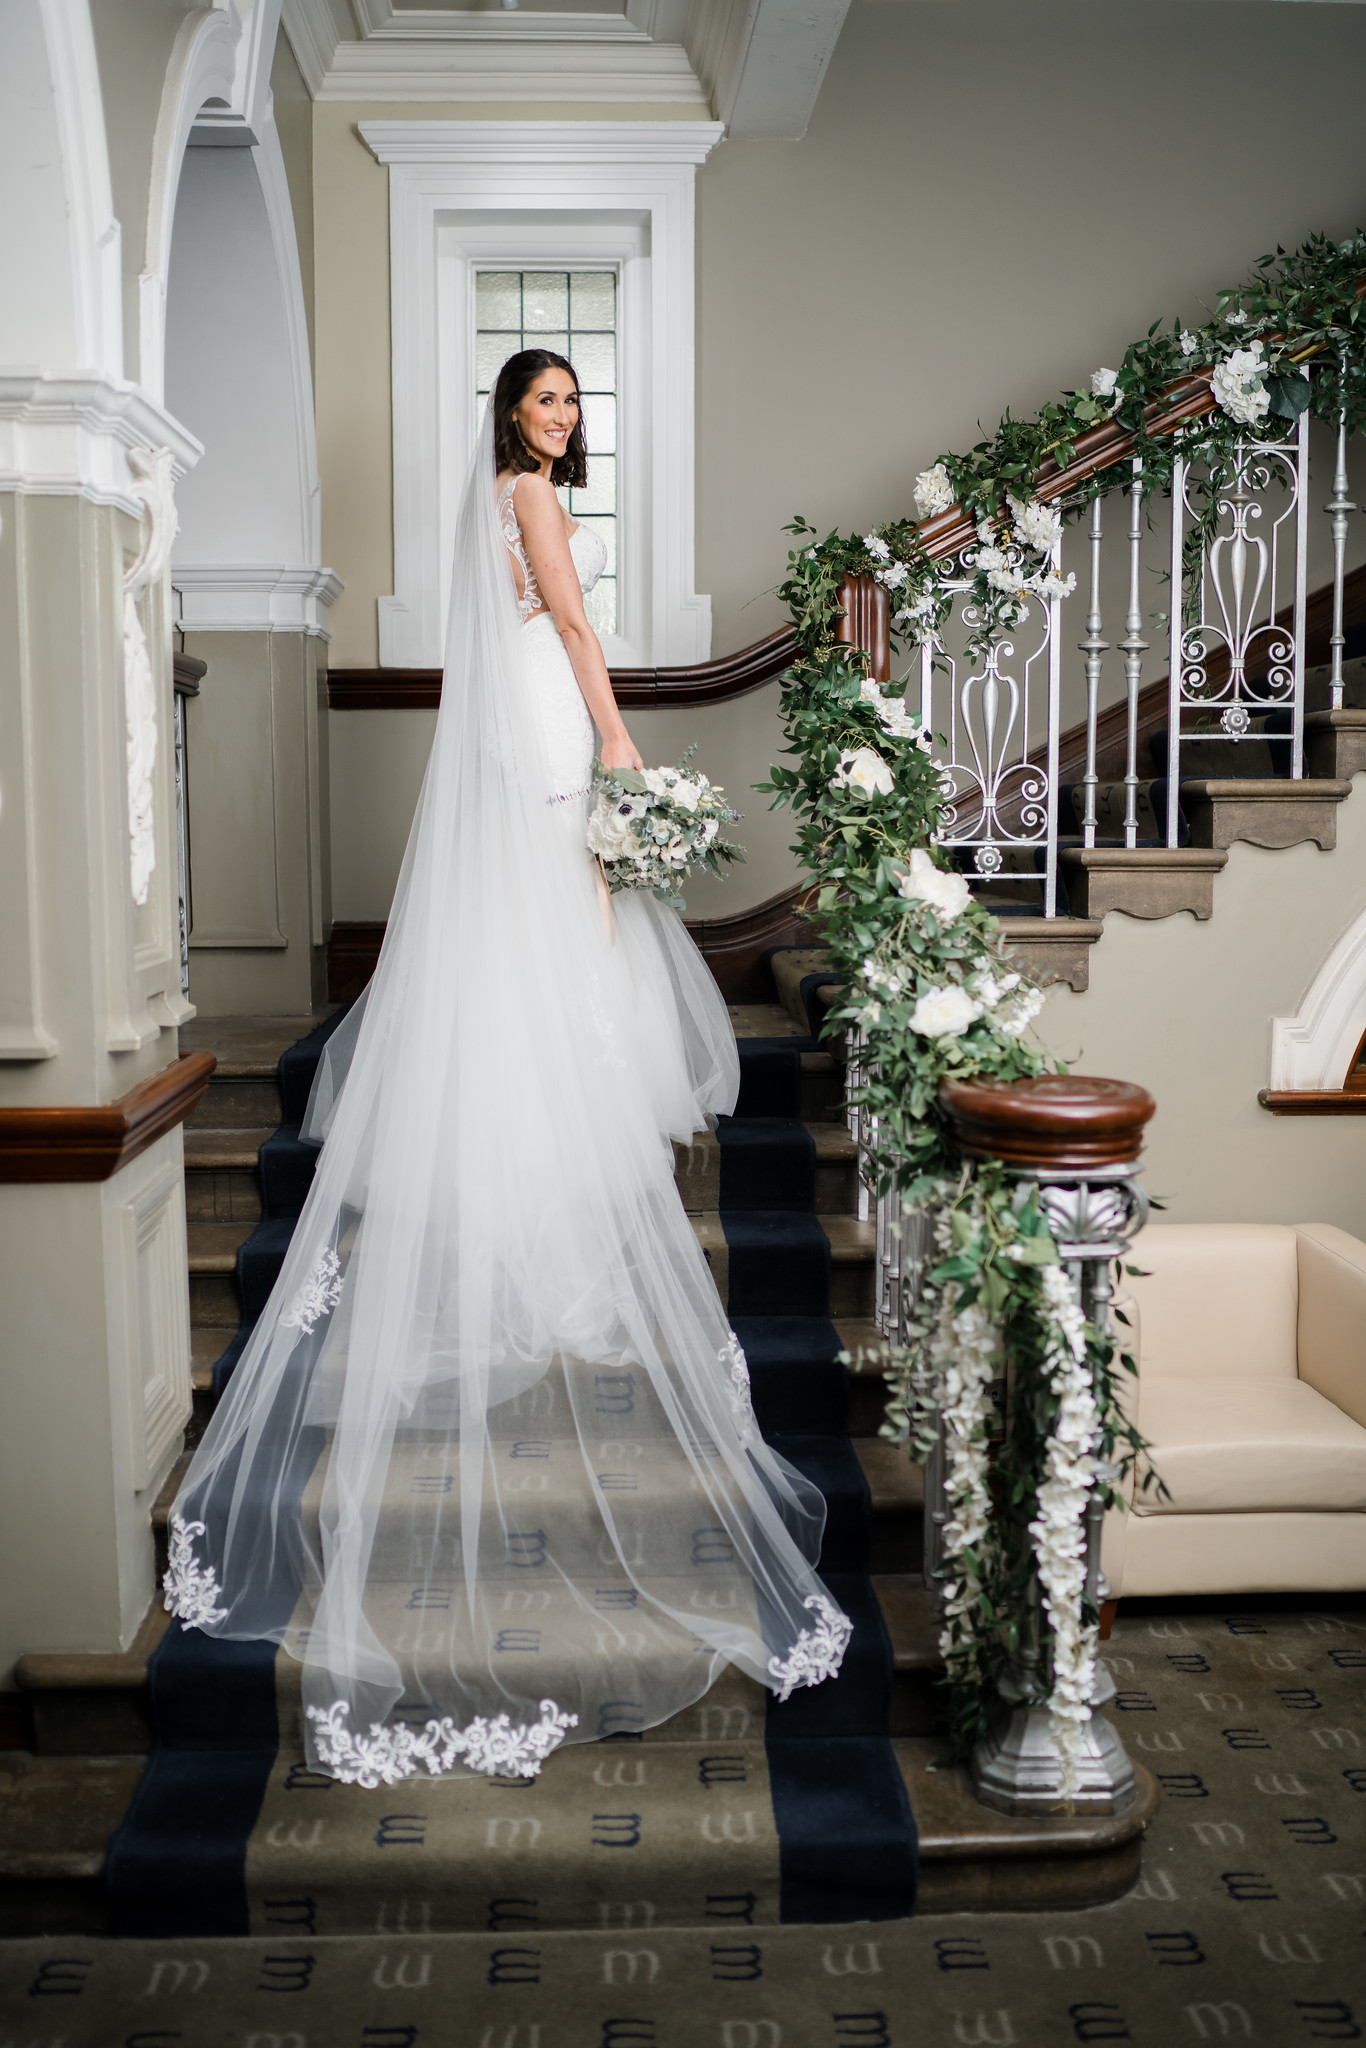 Bride looks back as she stands on the steps in the venue, her vail covers the steps behind her